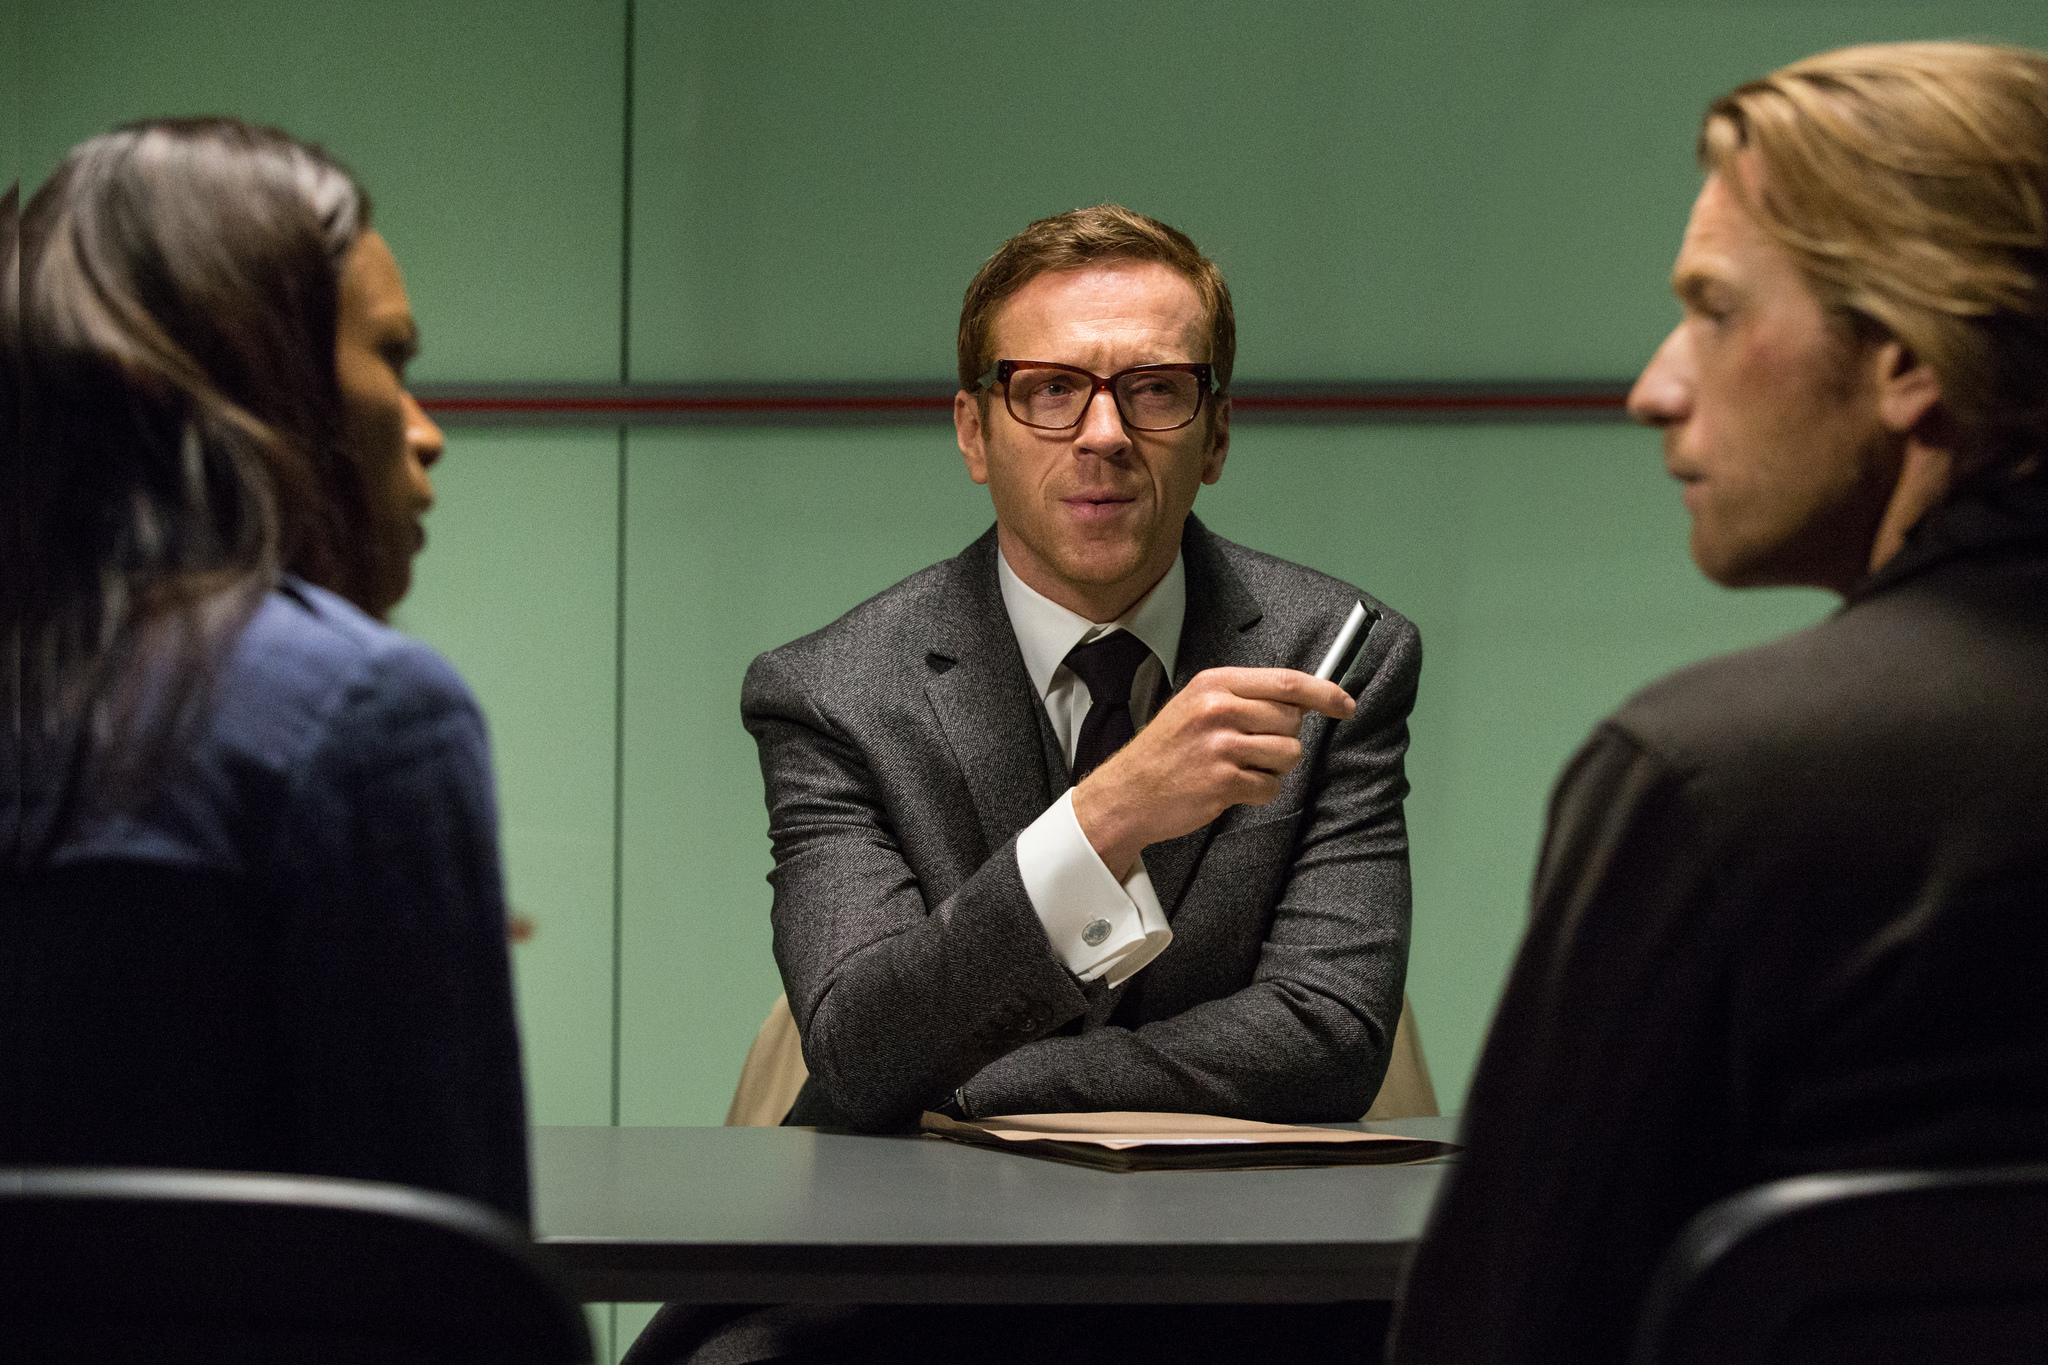 Ewan McGregor, Naomie Harris, and Damian Lewis in Our Kind of Traitor (2016)